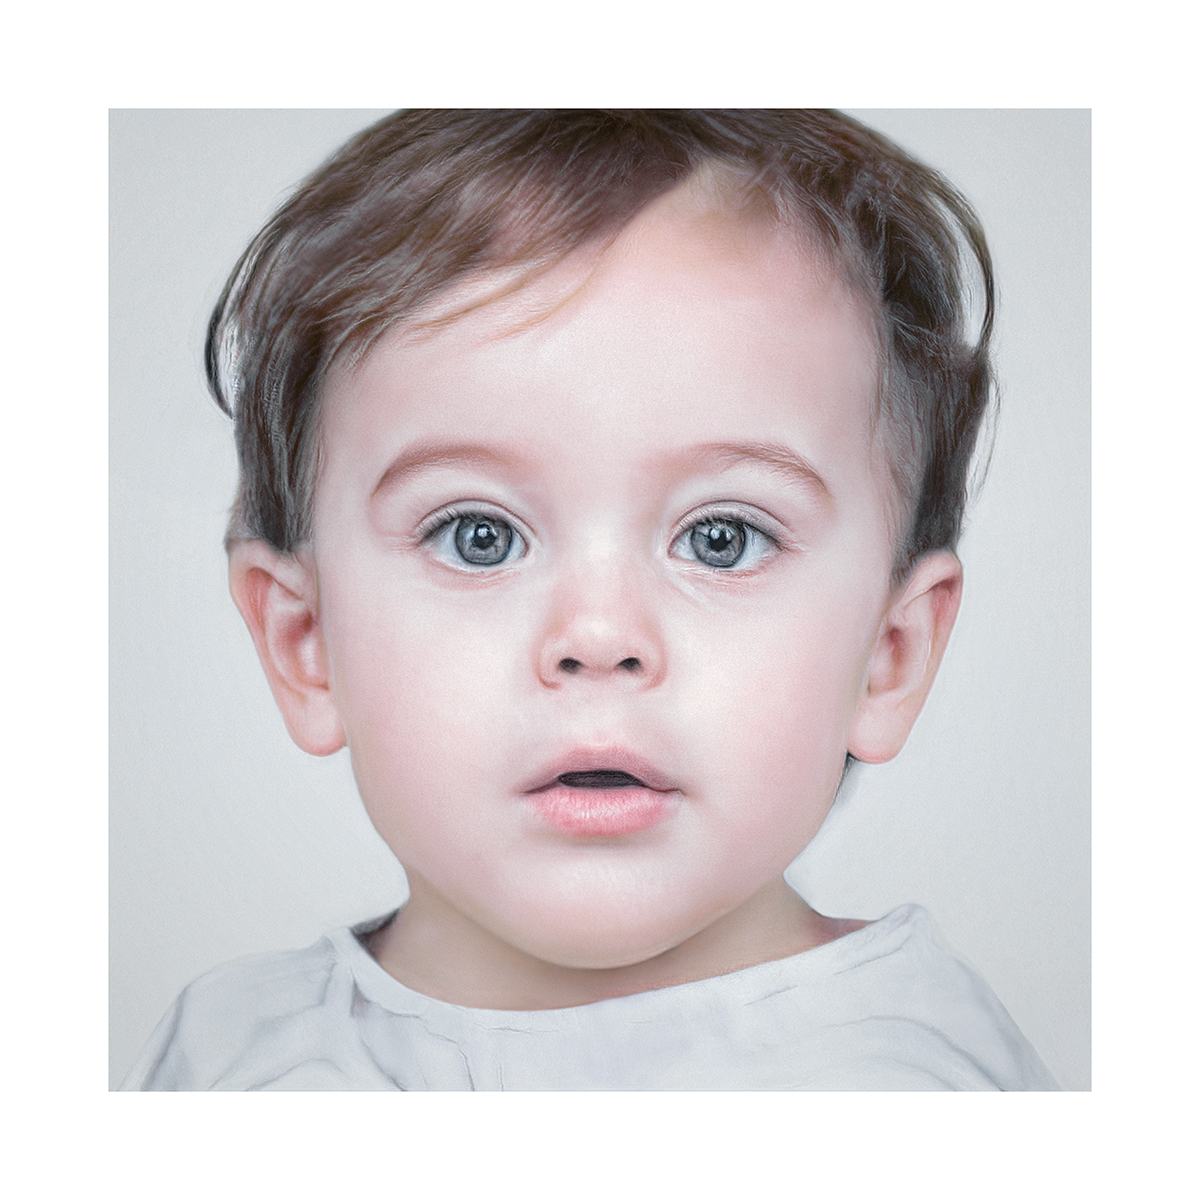 Generated Faces by AI Baby V1 001 1 - 2020 - Generated Faces by Artificial Intelligence. Baby. V1